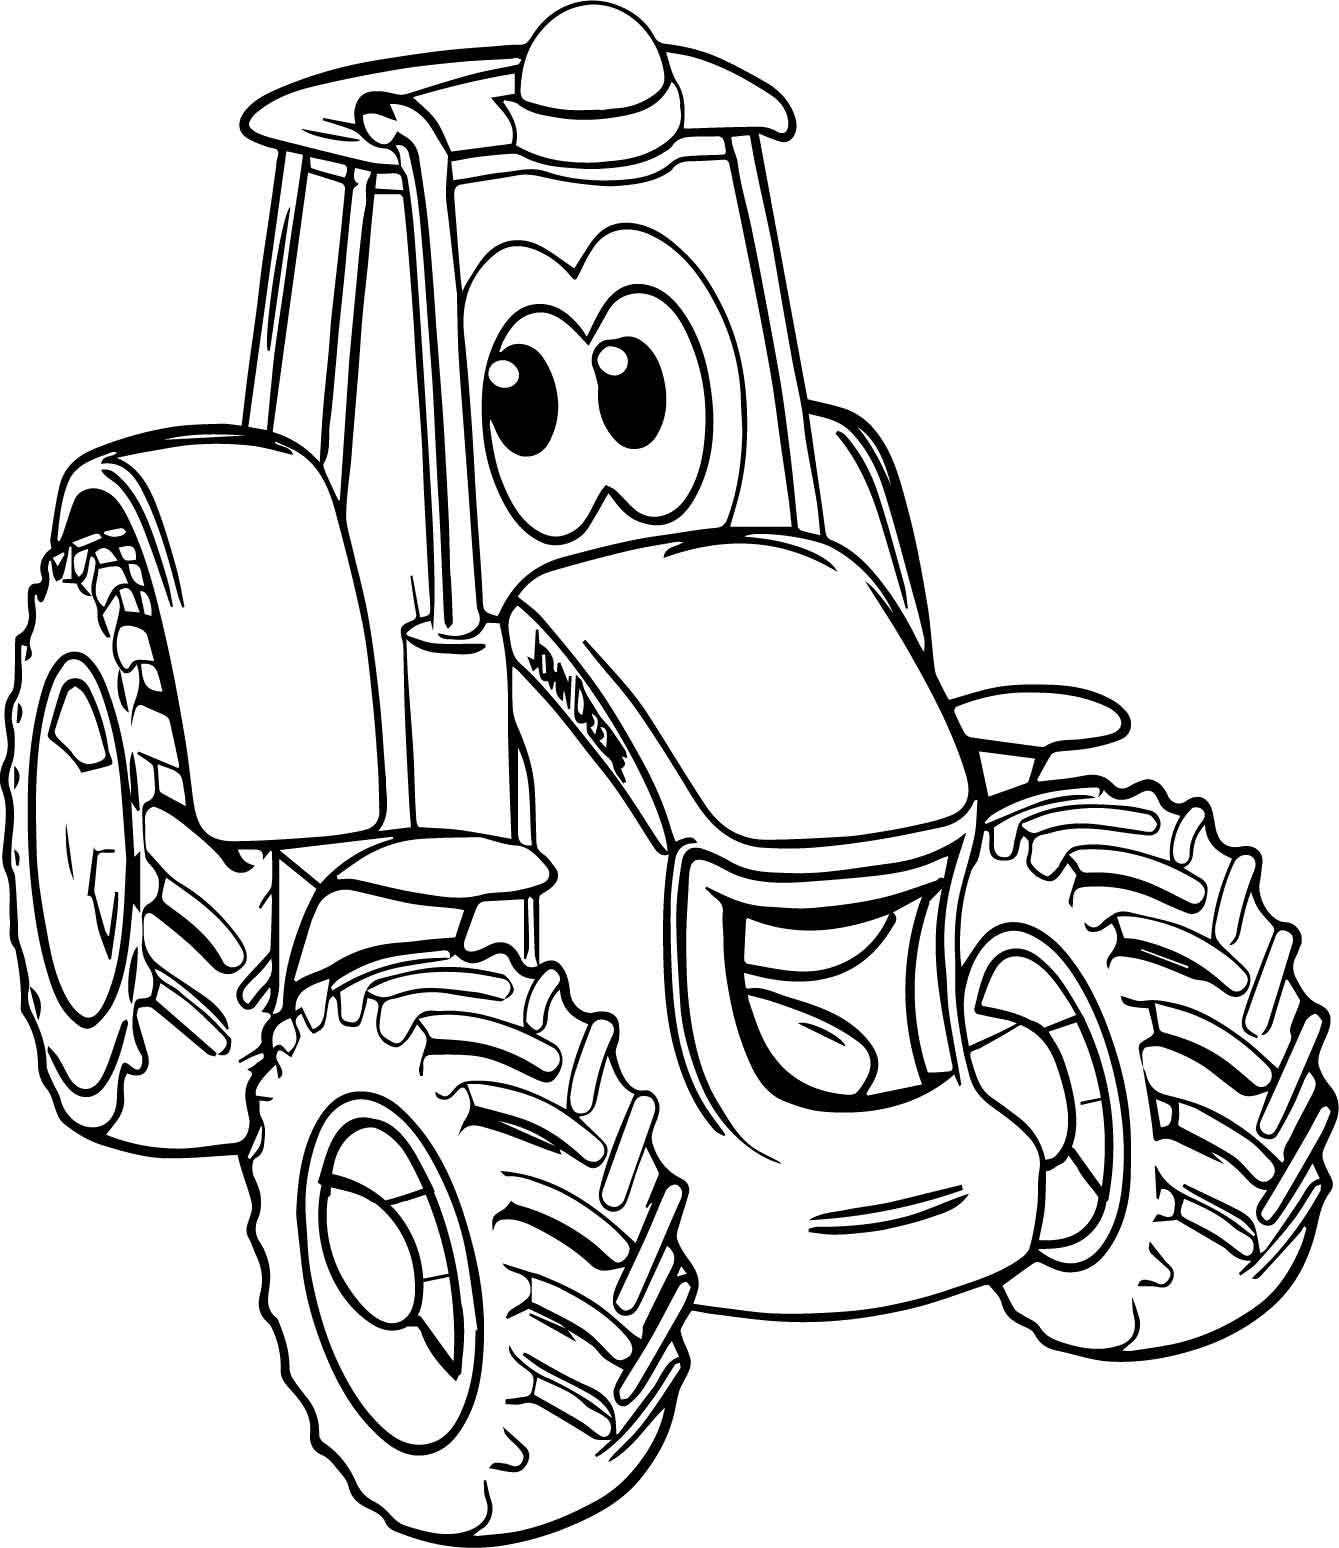 tractor coloring sheets free printable tractor coloring pages for kids tractor coloring sheets